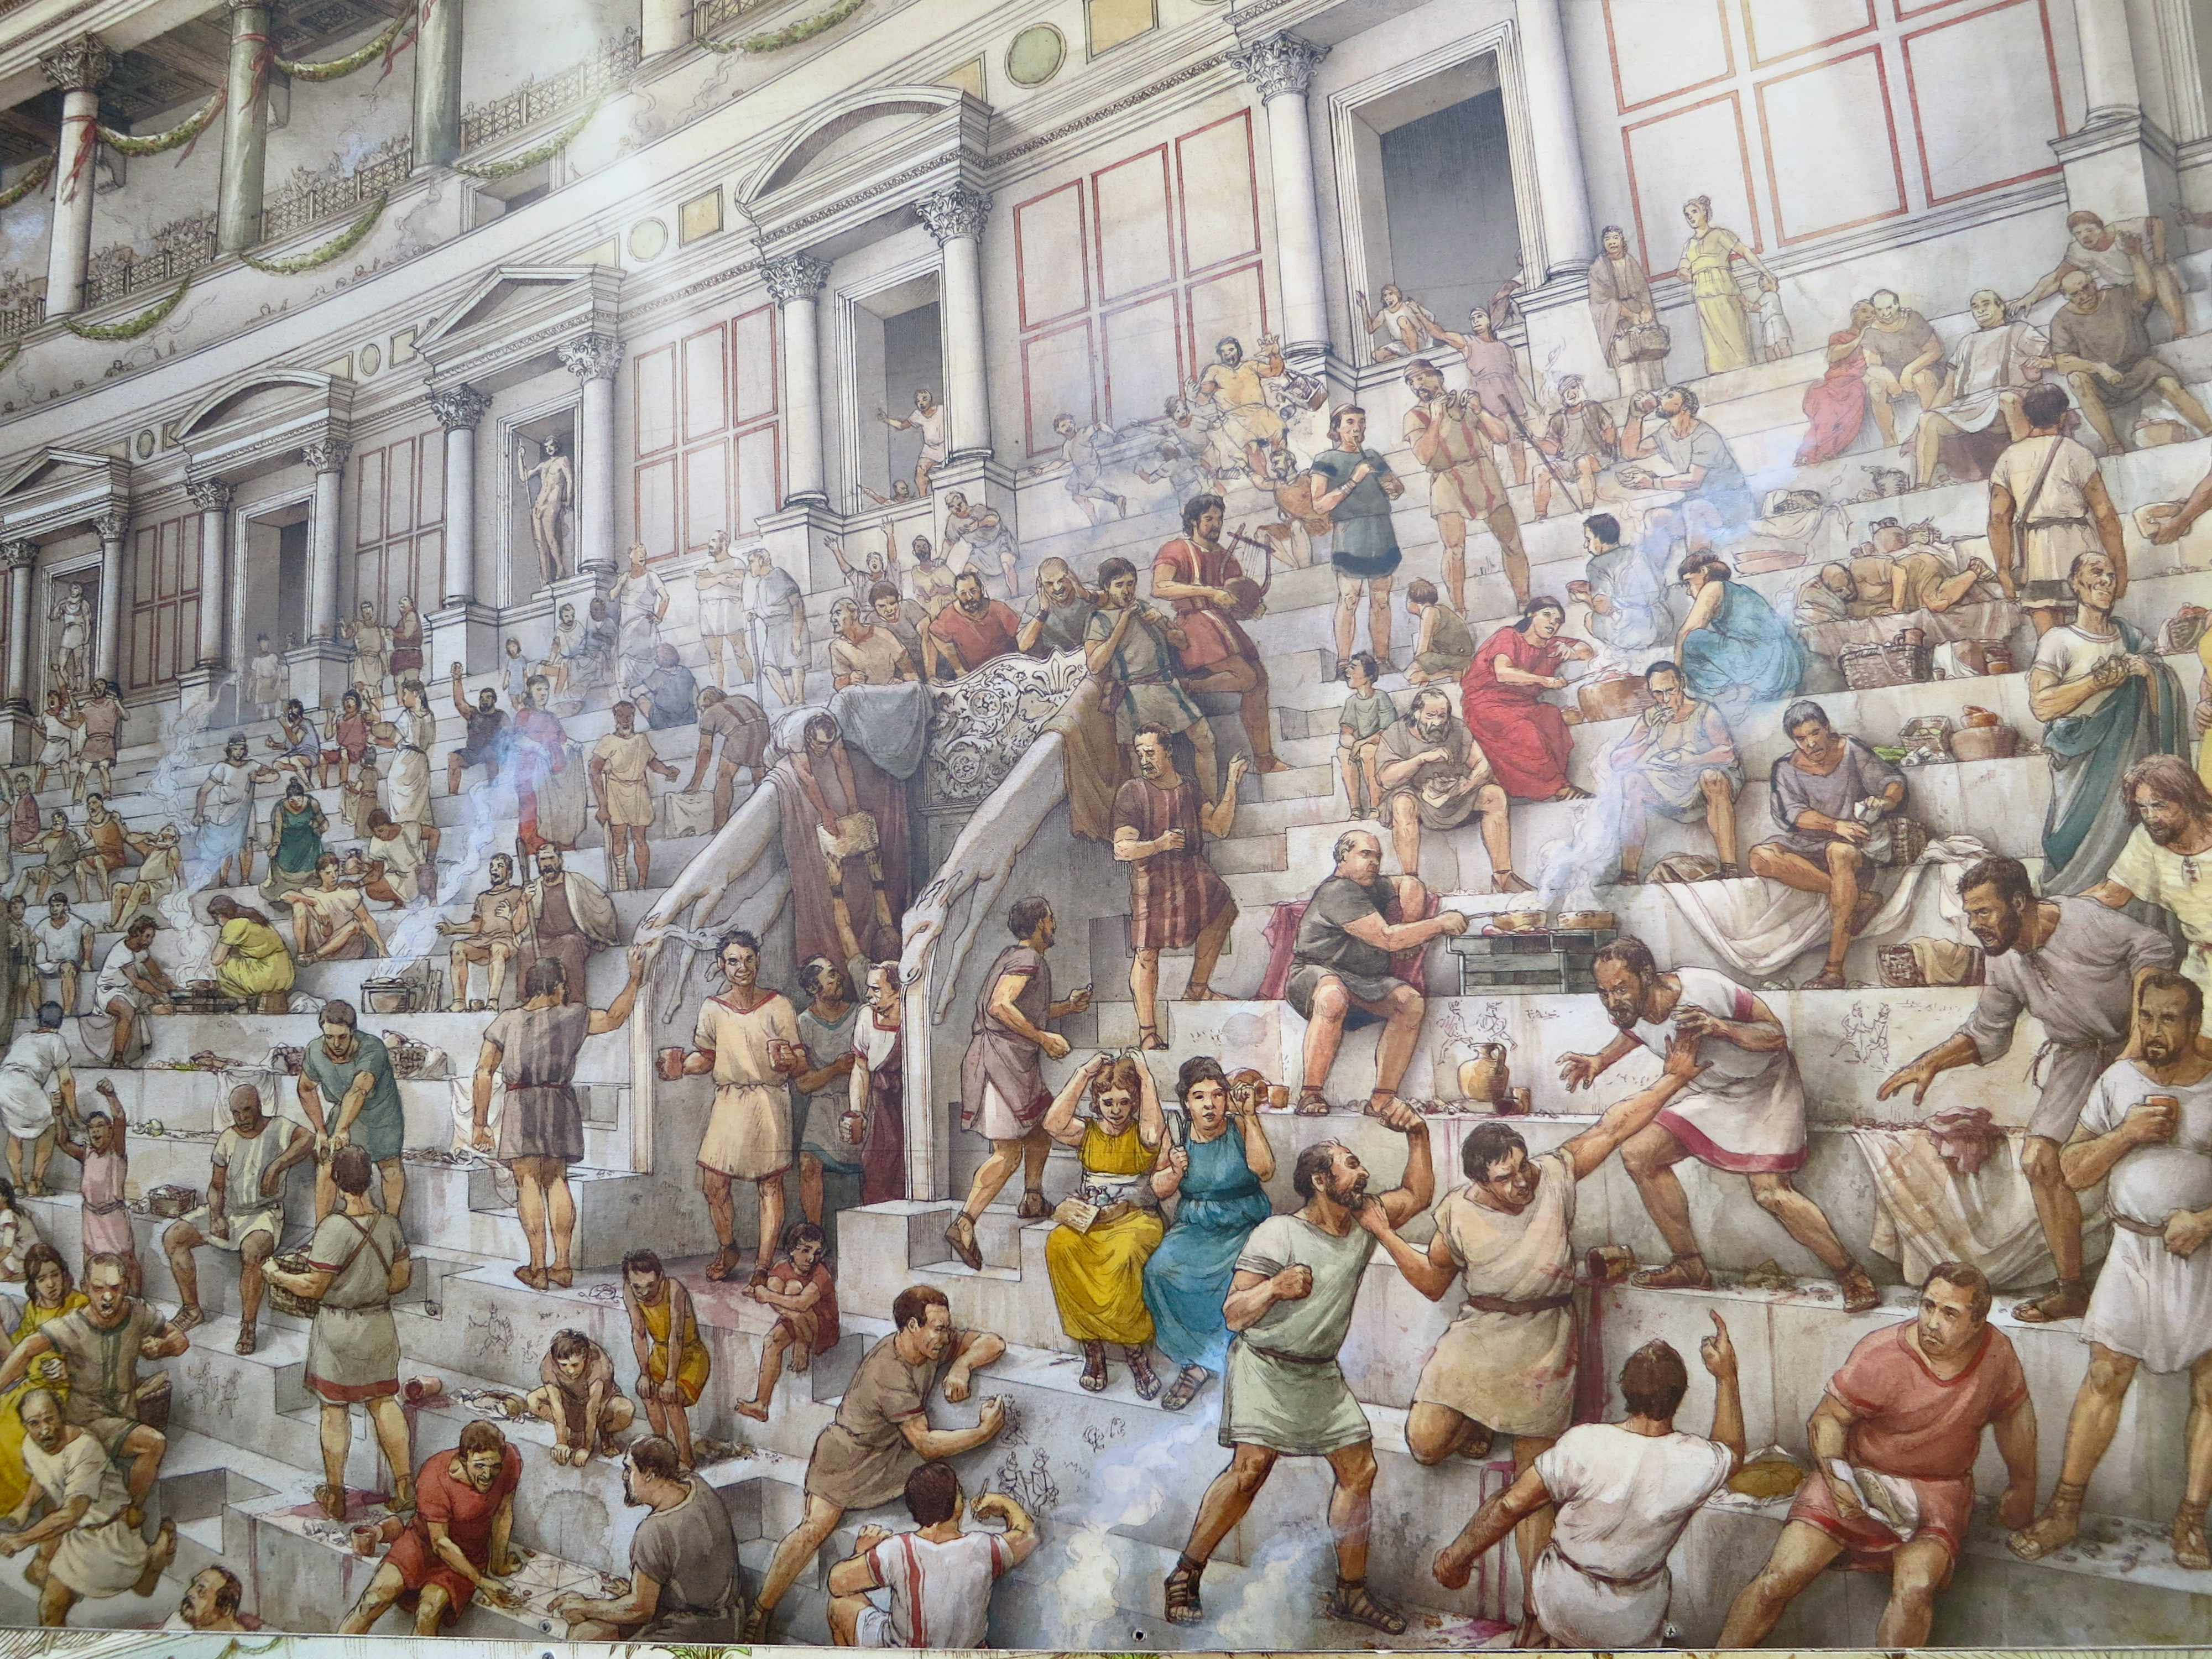 Painting in the Colosseum that illustrated a typical crowd cooking, eating, fighting and drinking.